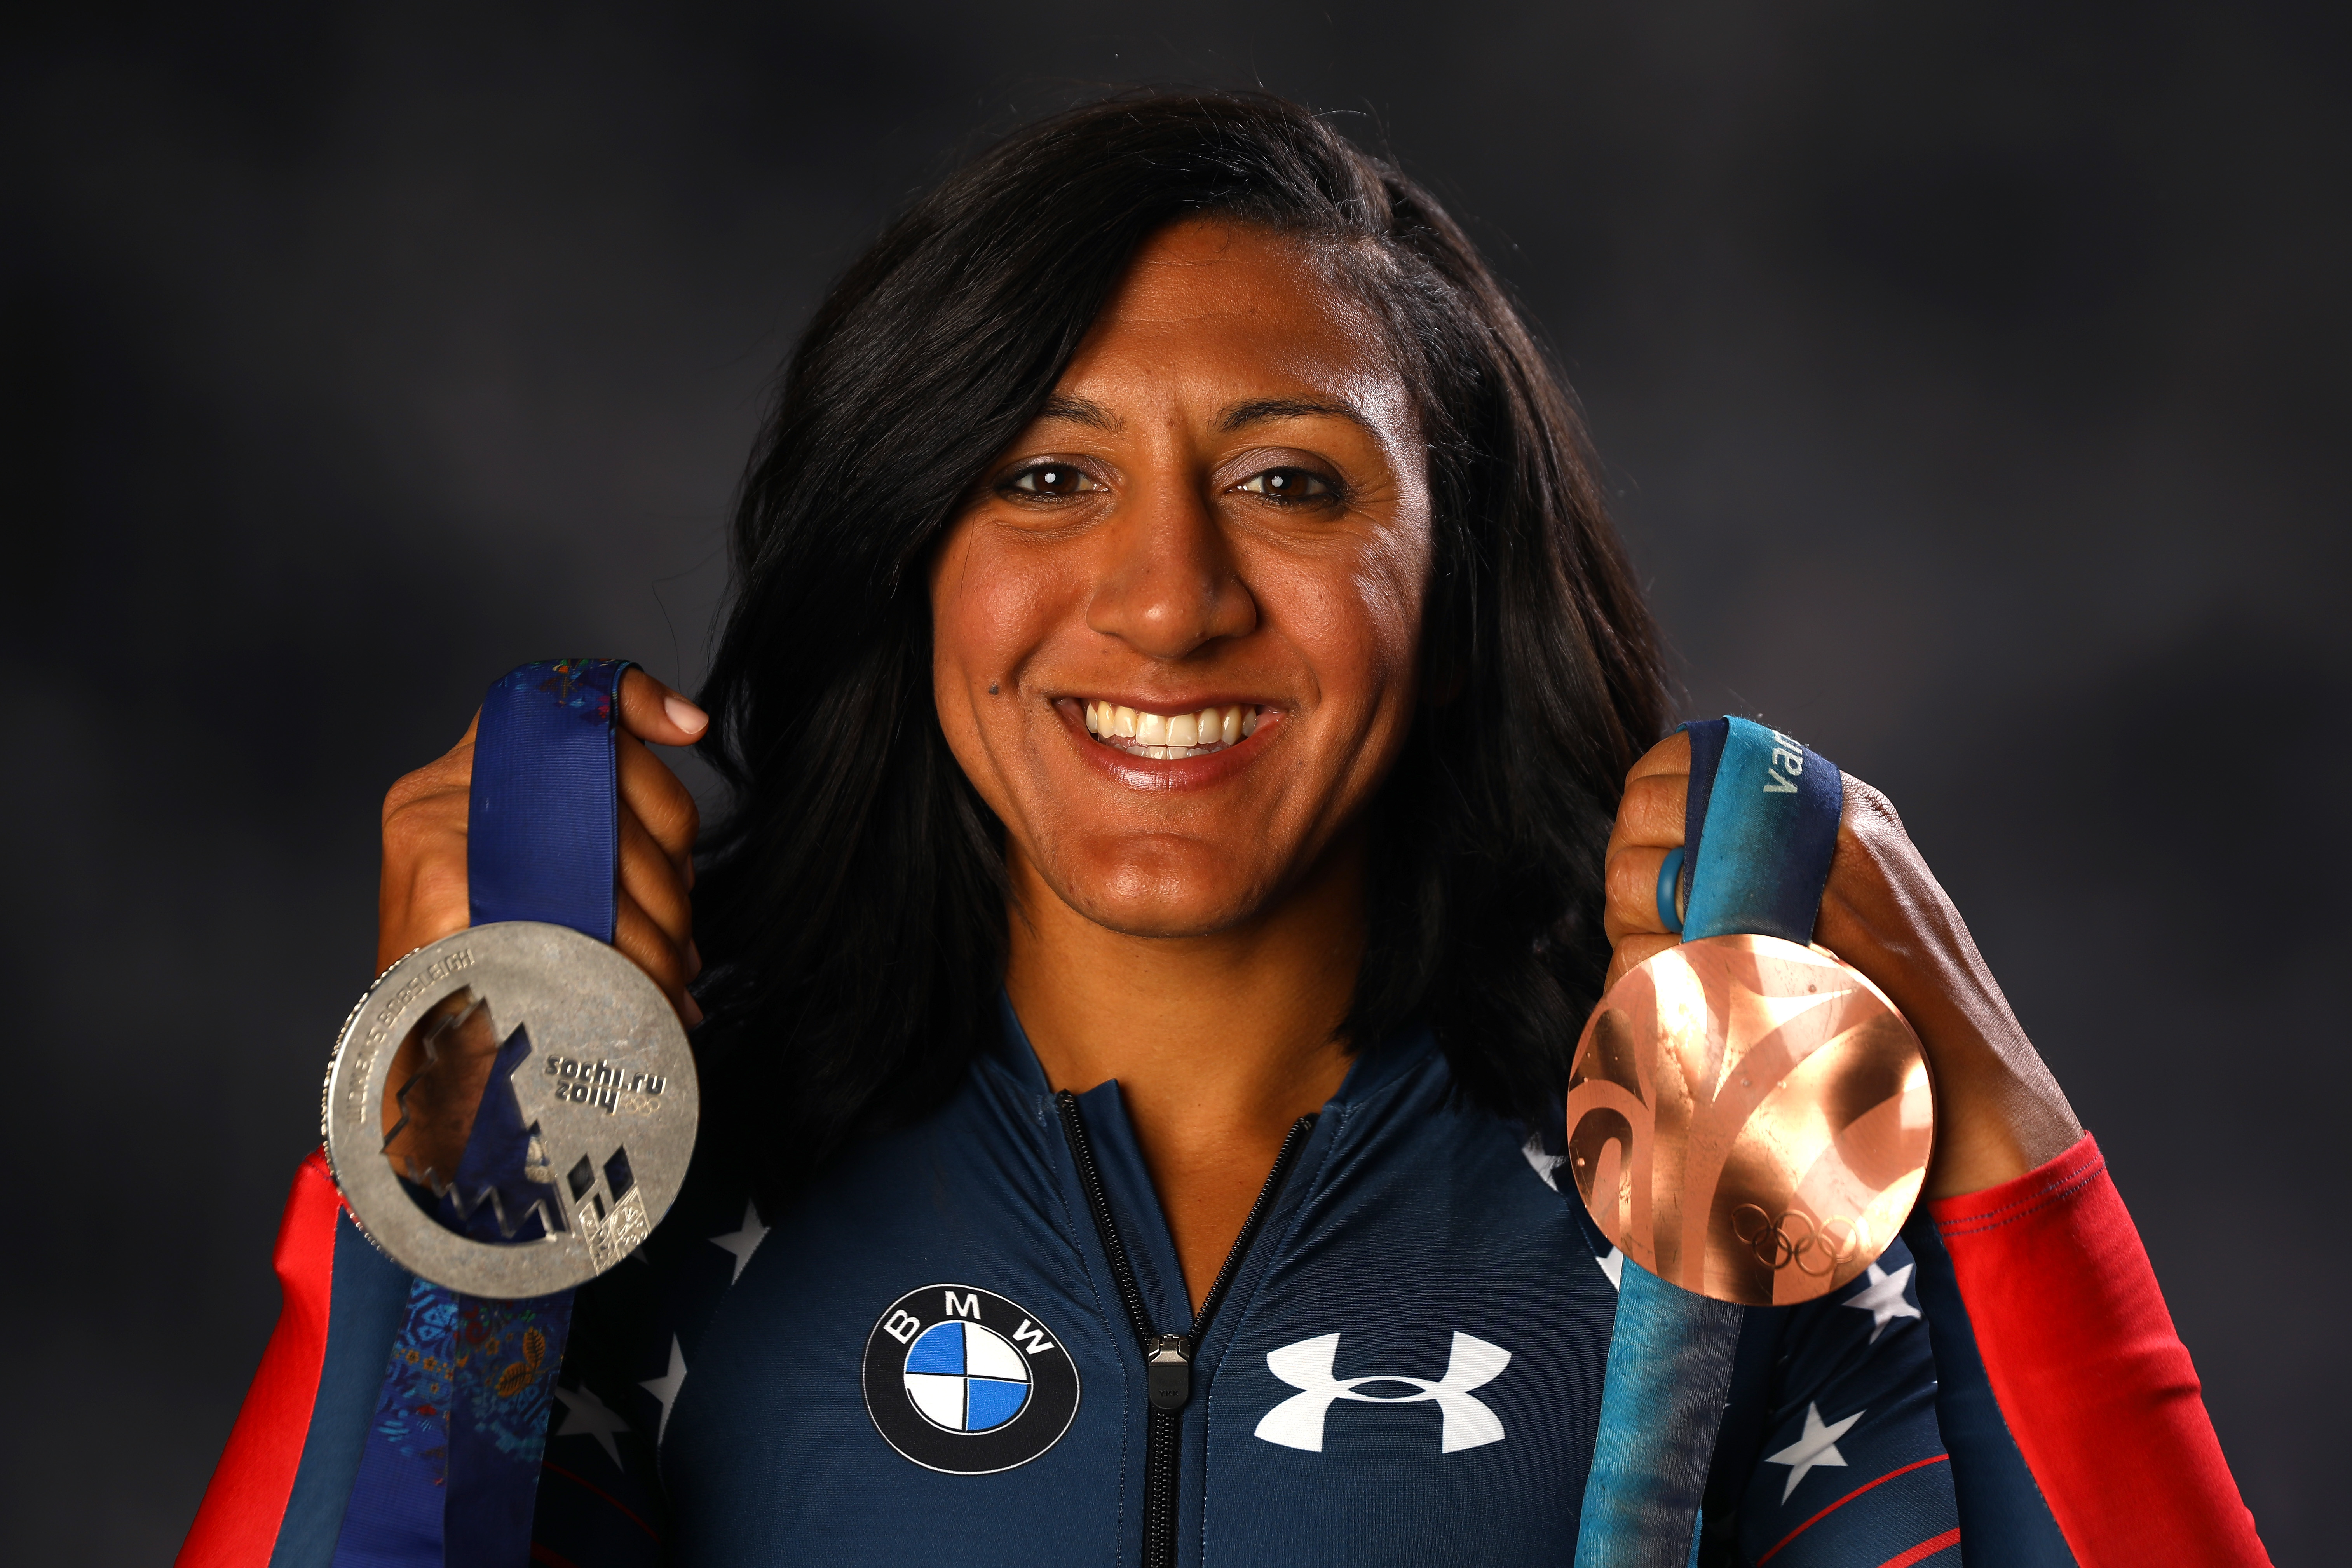 Bobsledder Elana Meyers Taylor poses for a portrait during the Team USA Media Summit ahead of the PyeongChang 2018 Olympic Winter Games on September 25, 2017 in Park City, Utah.